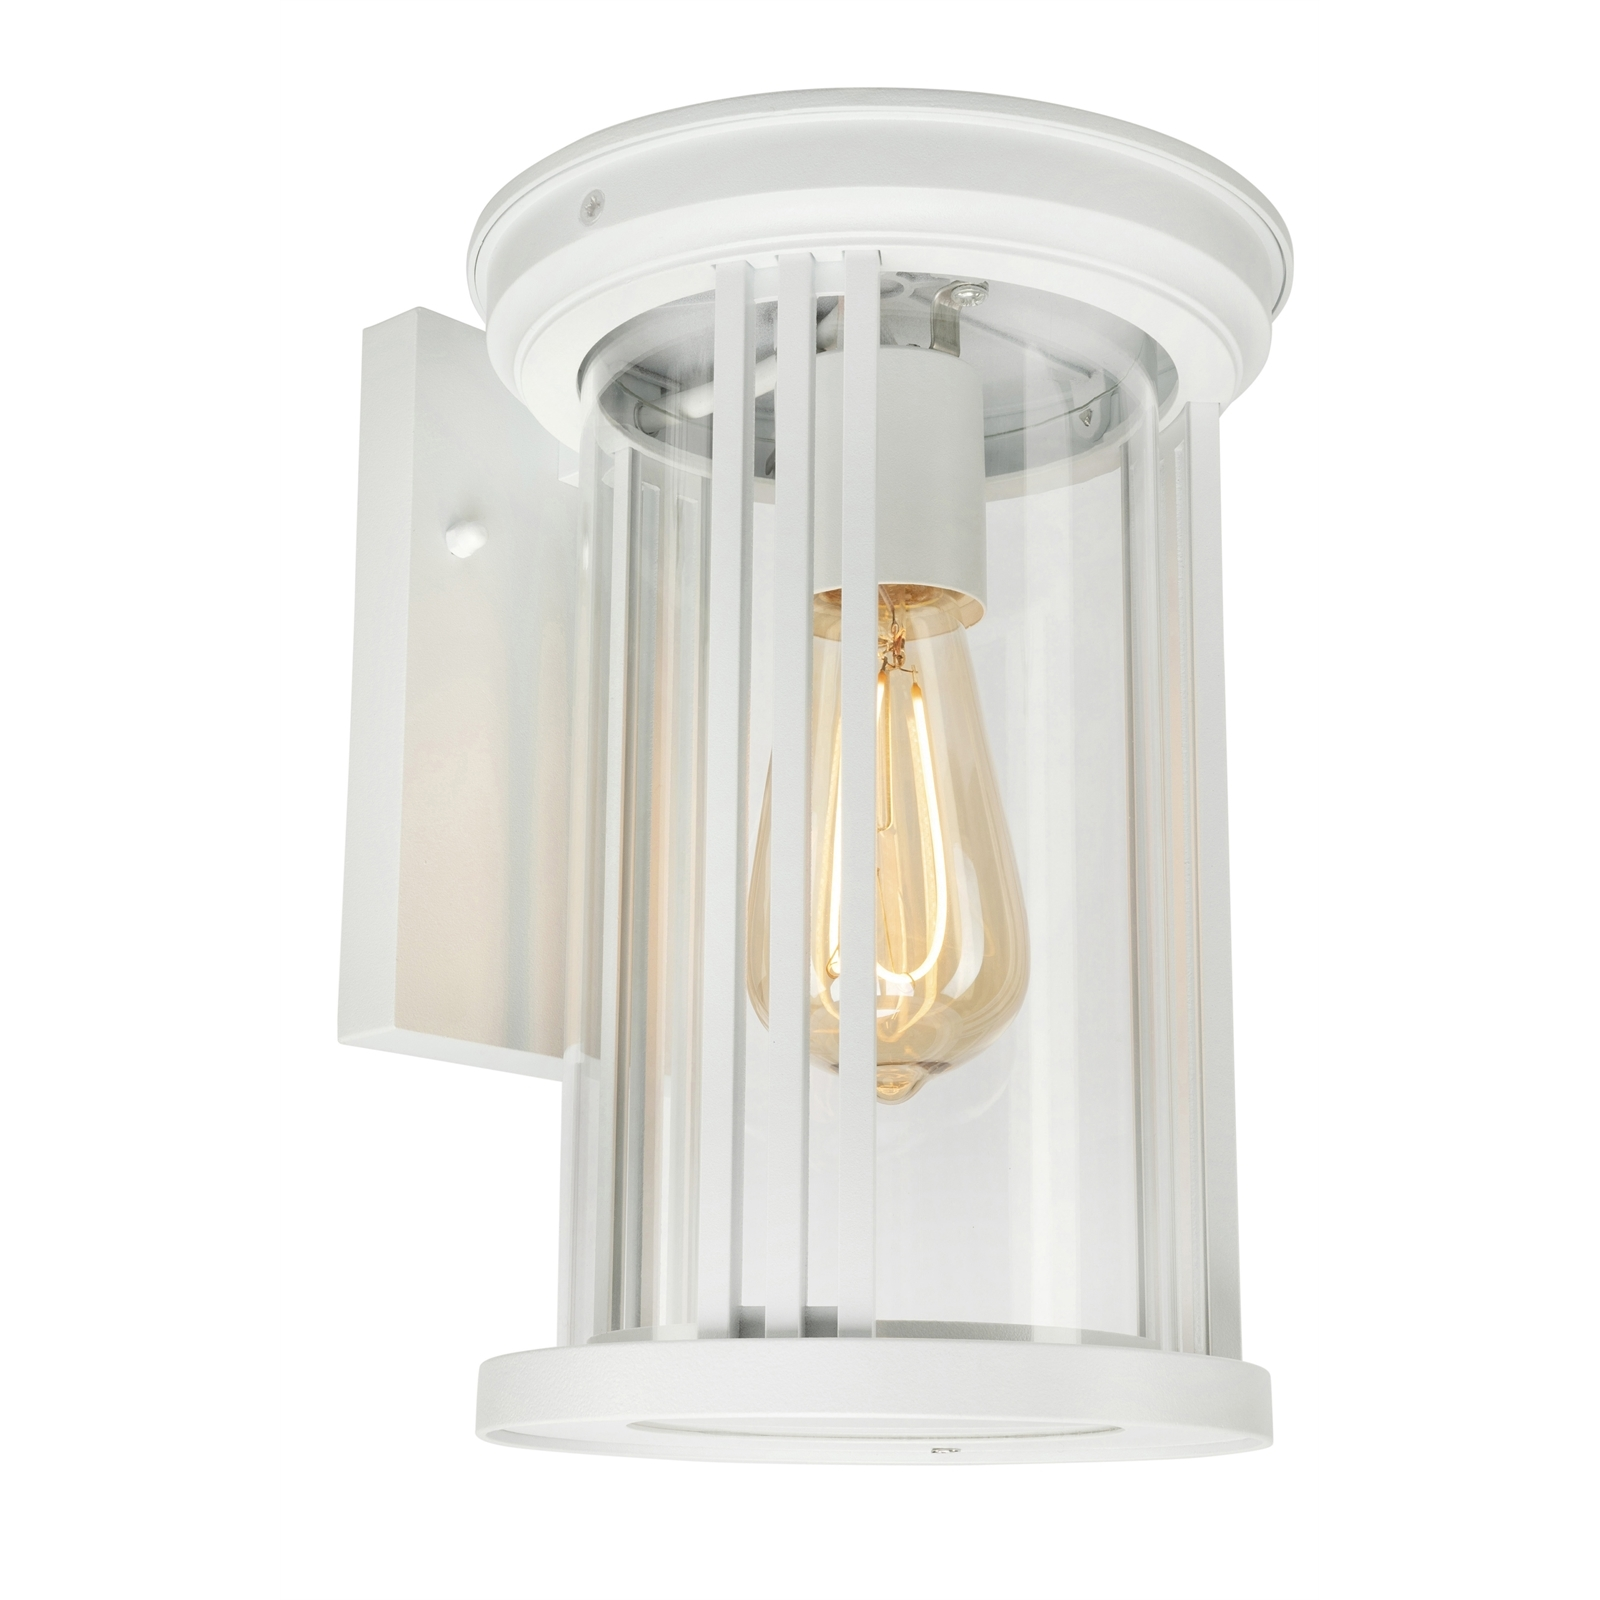 Brilliant Lighting White Ripley Exterior Wall Light With Glass